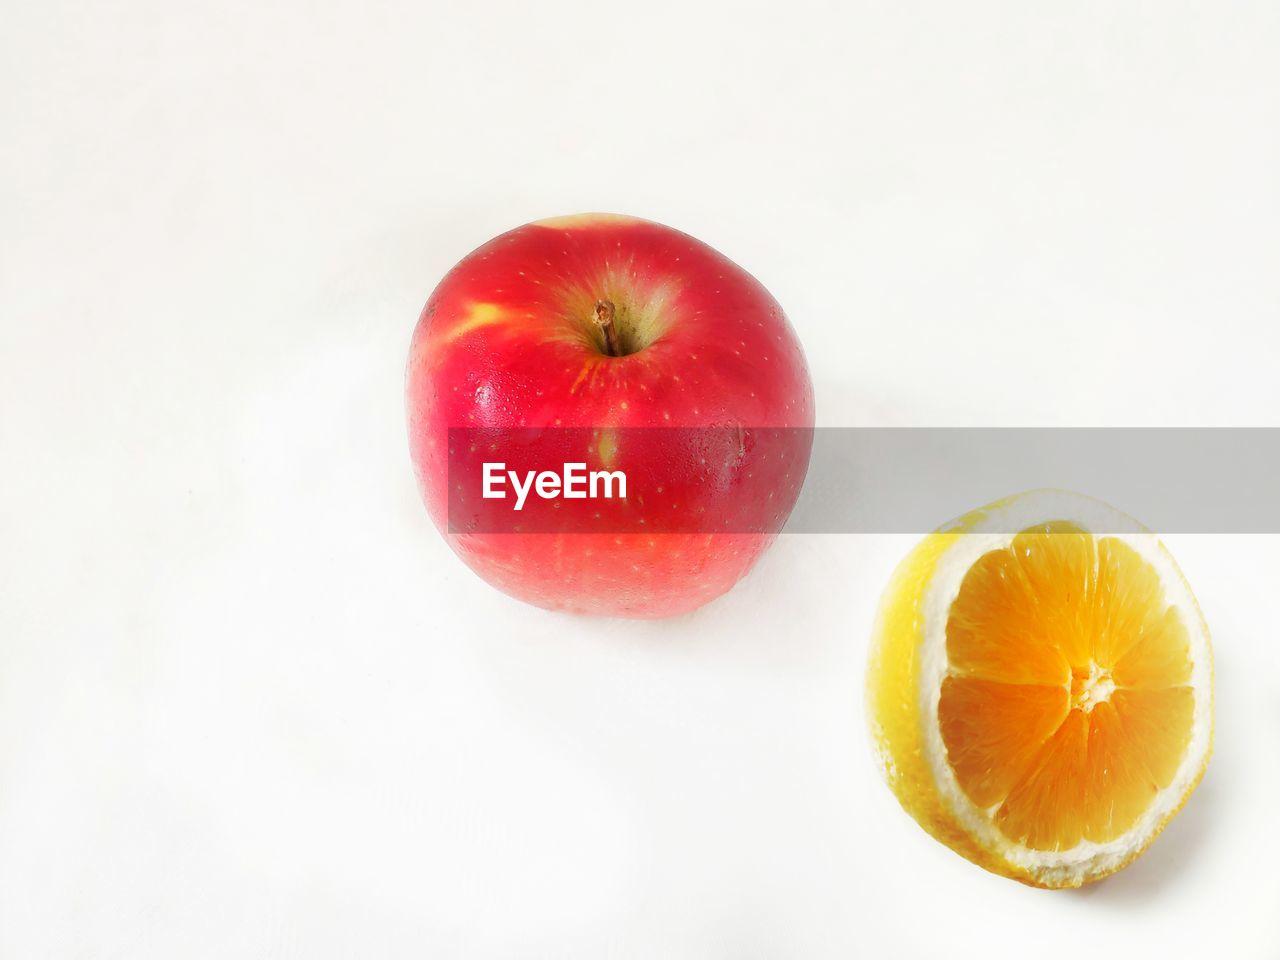 fruit, food and drink, healthy eating, food, wellbeing, studio shot, freshness, still life, white background, indoors, apple - fruit, close-up, no people, copy space, citrus fruit, red, cross section, high angle view, group of objects, slice, orange, ripe